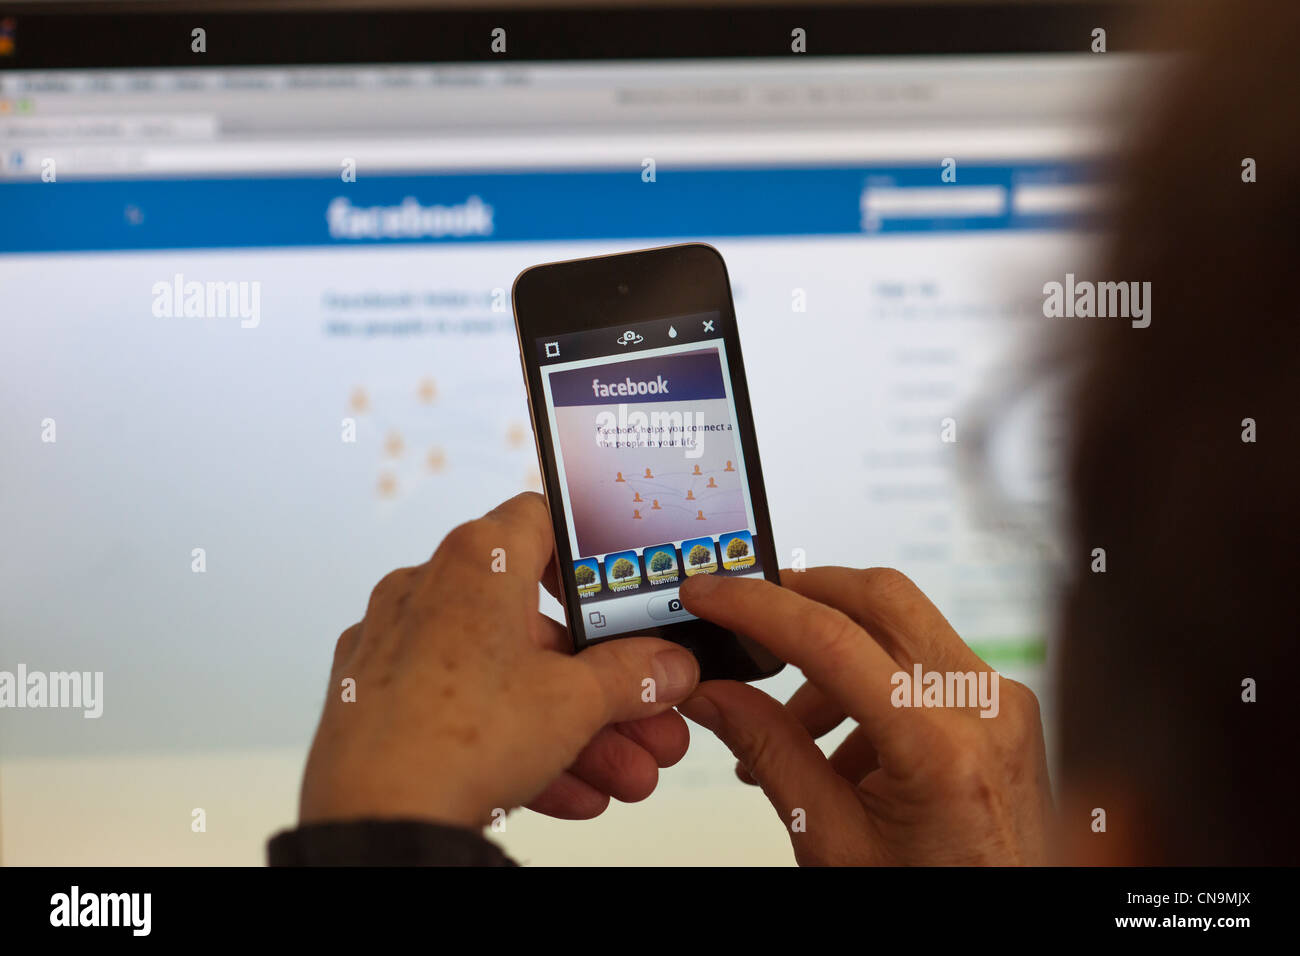 A woman holds her iPod touch and photographs the Facebook web page using an Instagram app - Stock Image